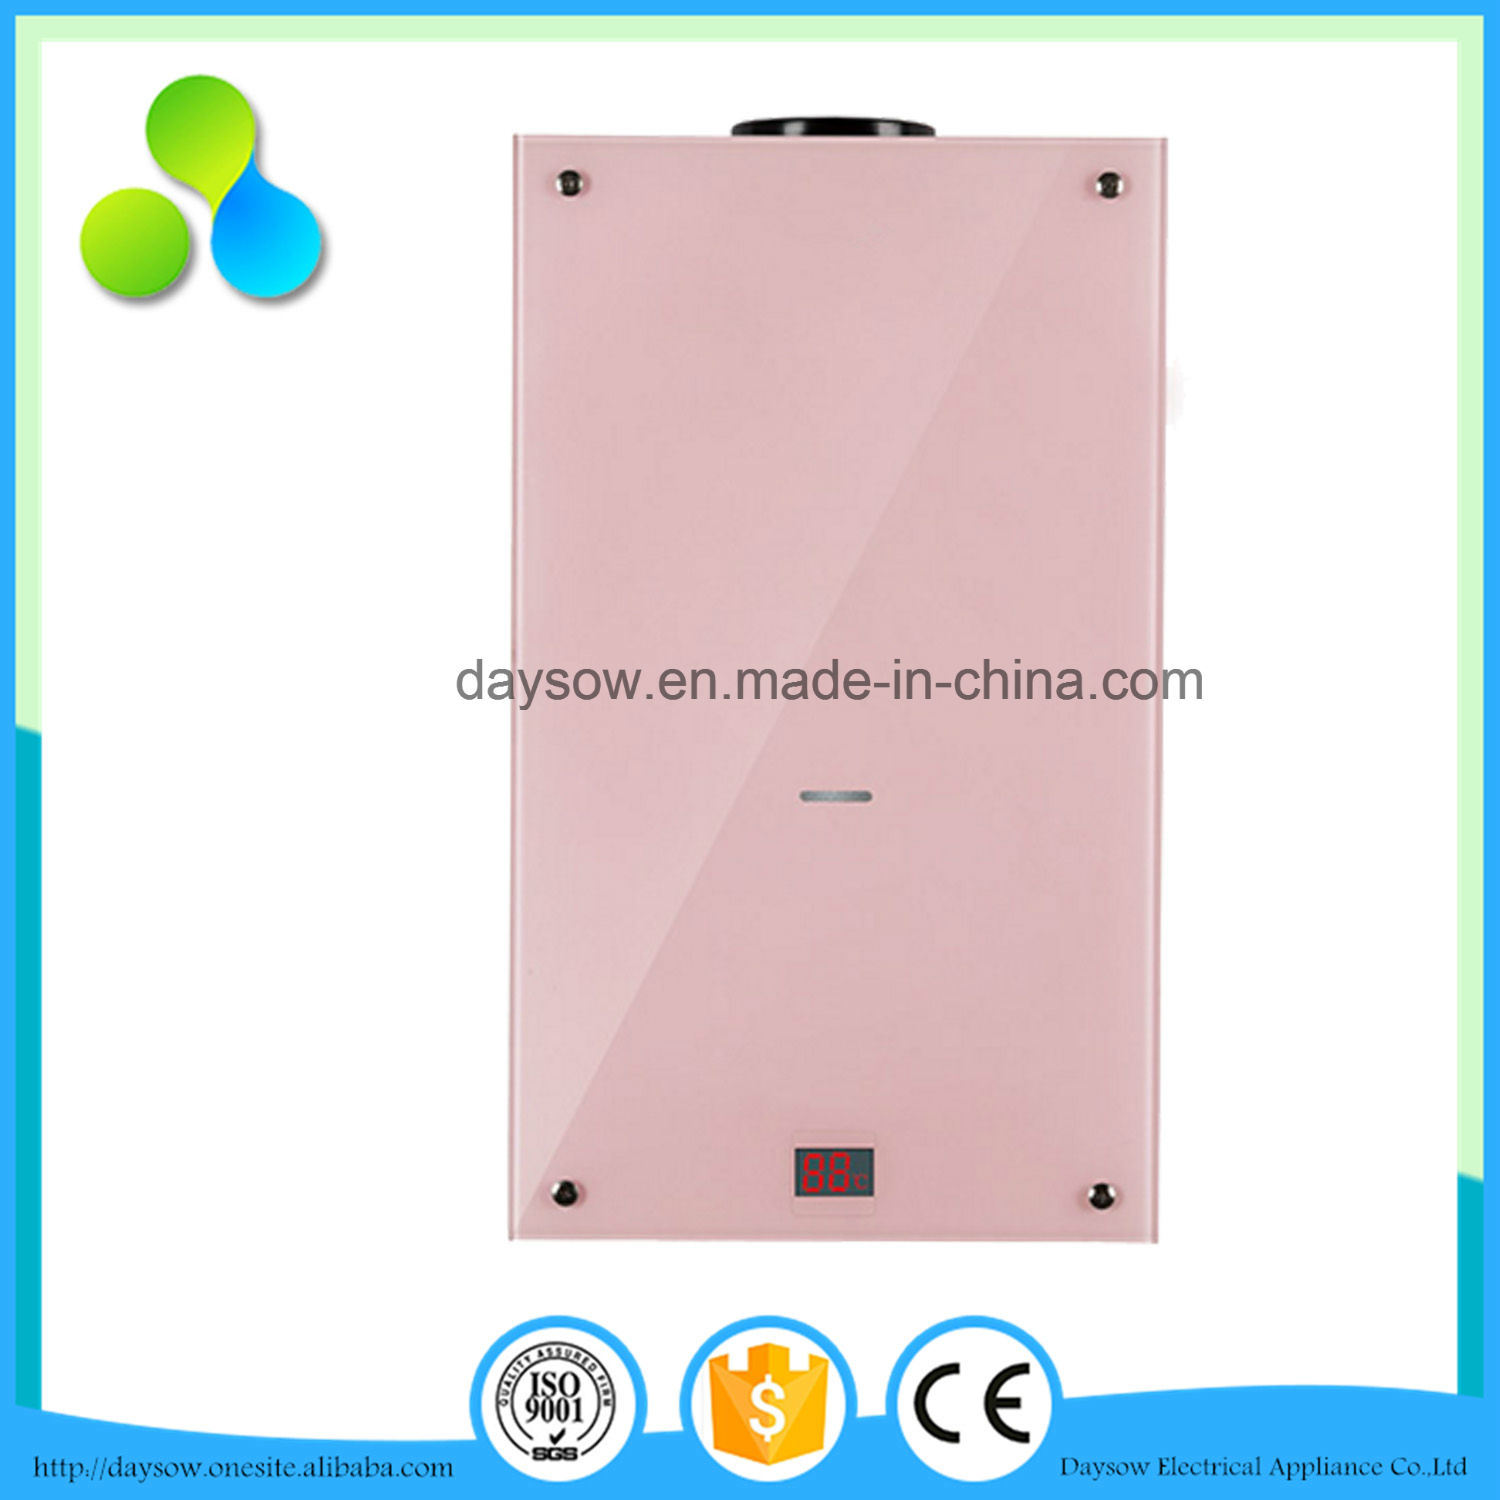 10L, 12L Gas Water Heater